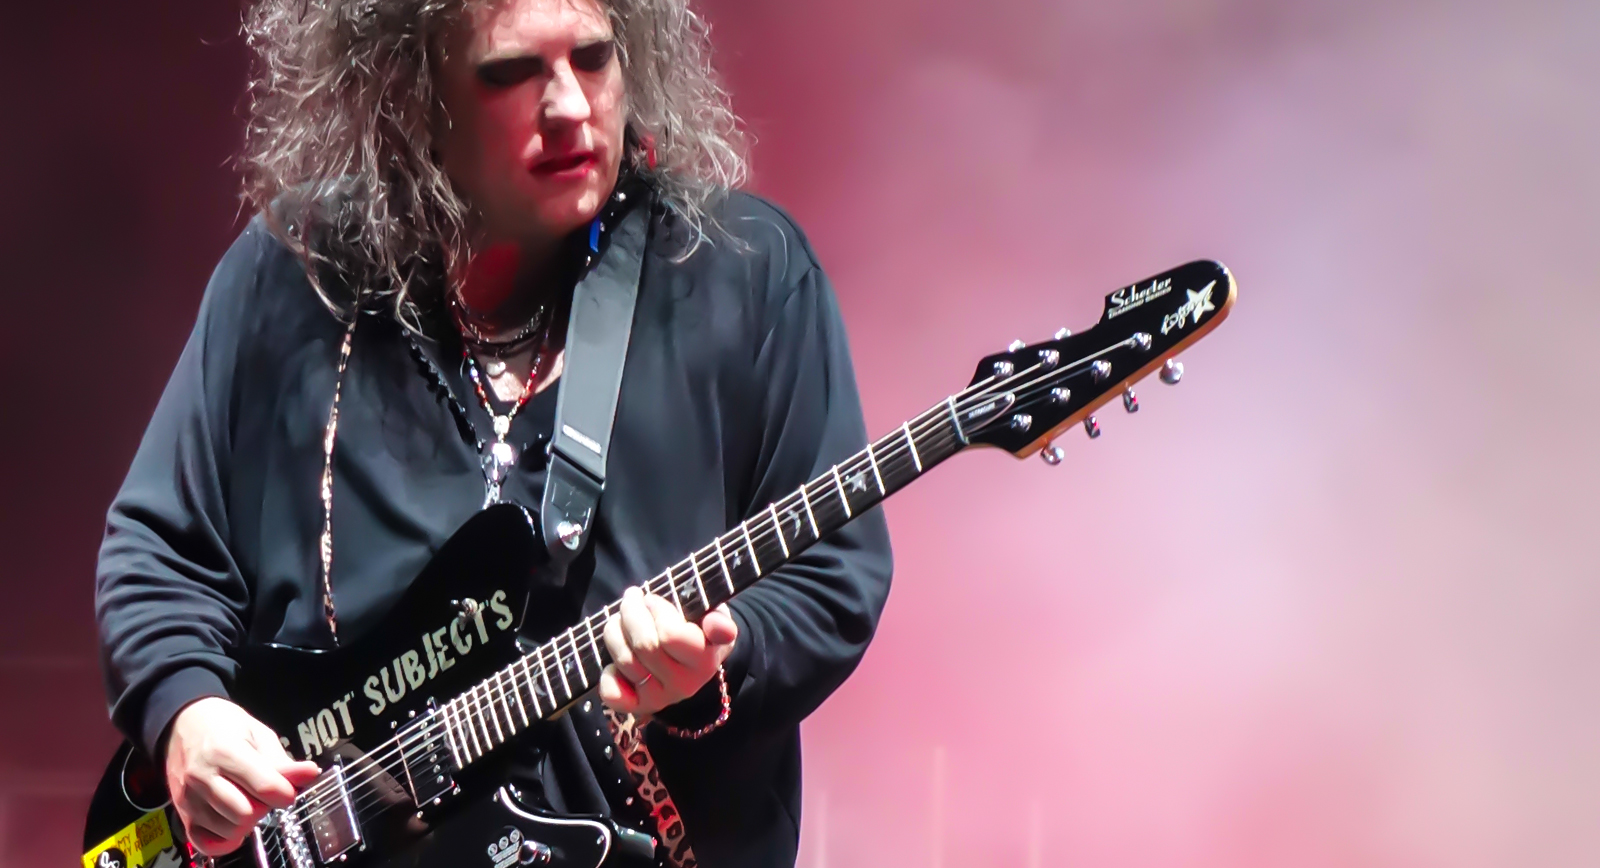 37 Tour The Cure Tour 2016 To Explore 37 Years Of Cure Songs While